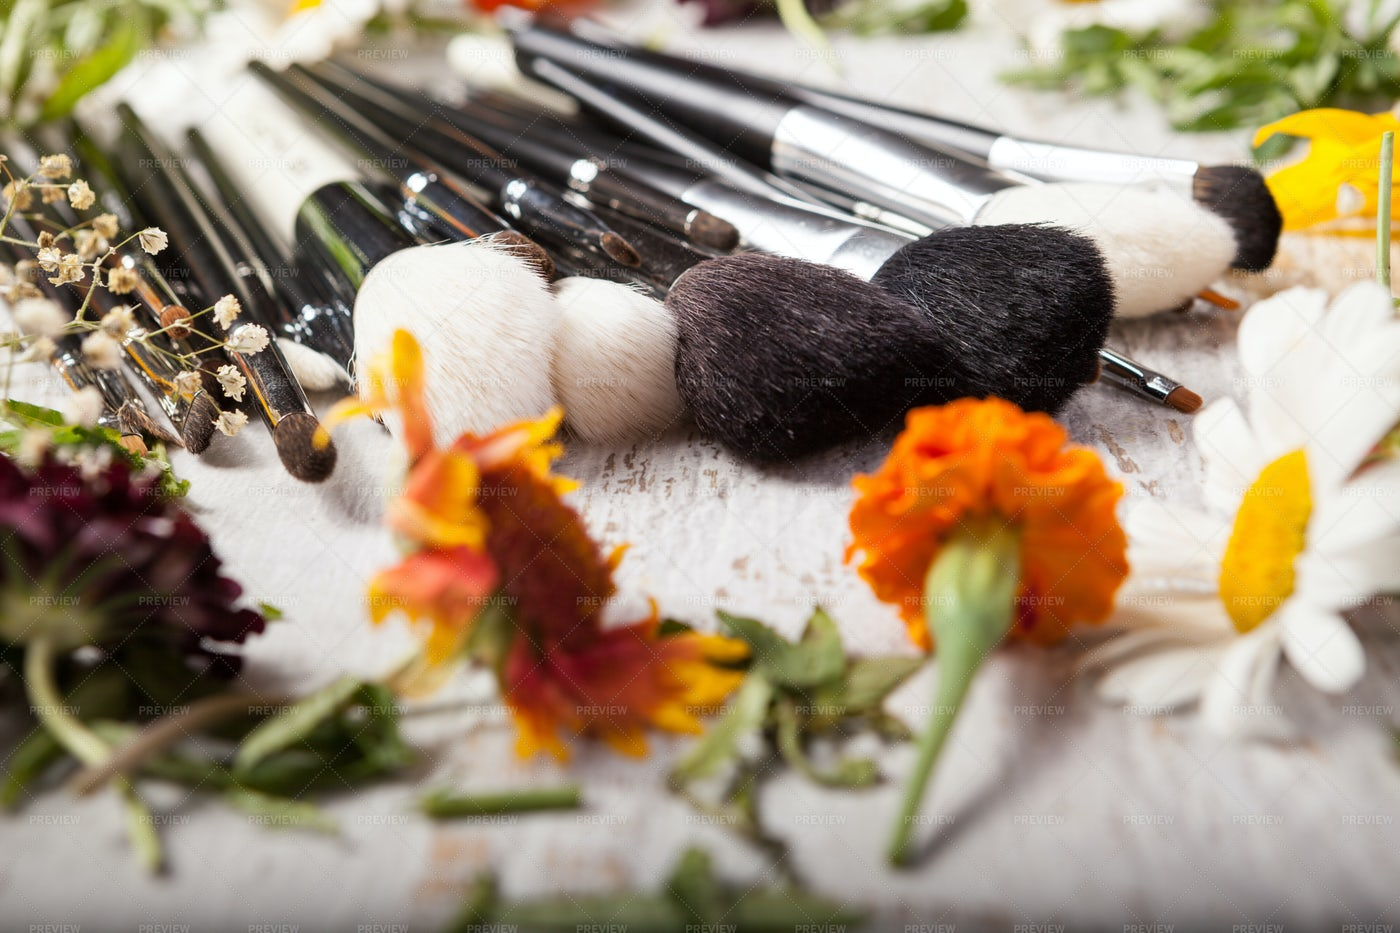 Blush Brushes And Wildflowers: Stock Photos